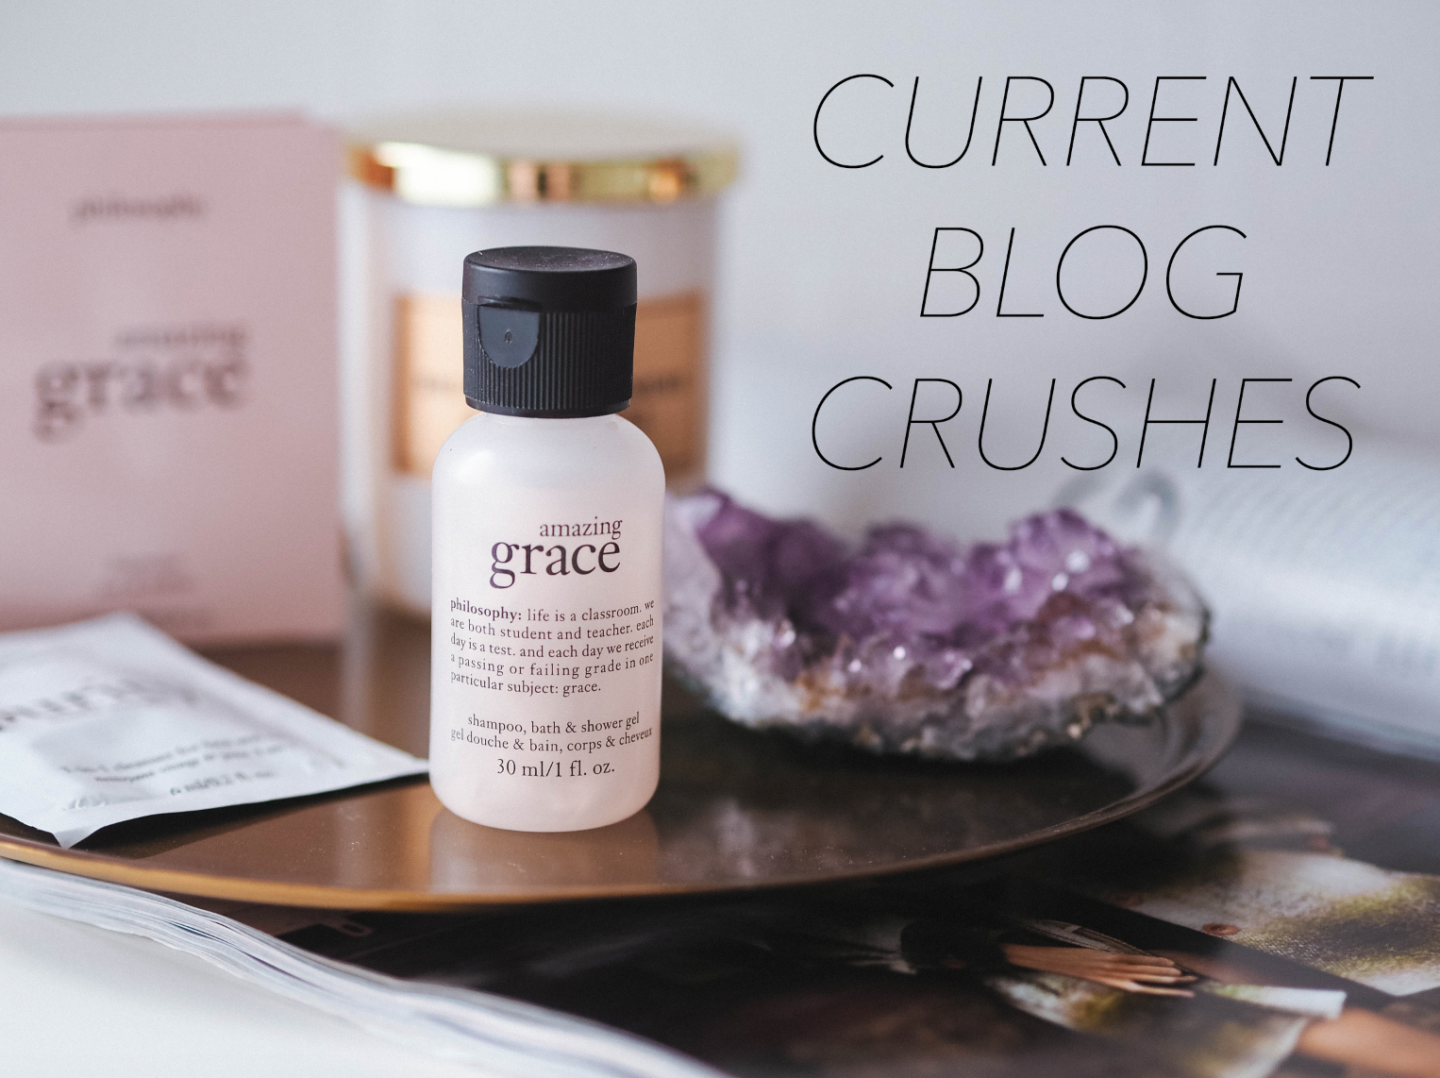 CURRENT BLOG CRUSHES